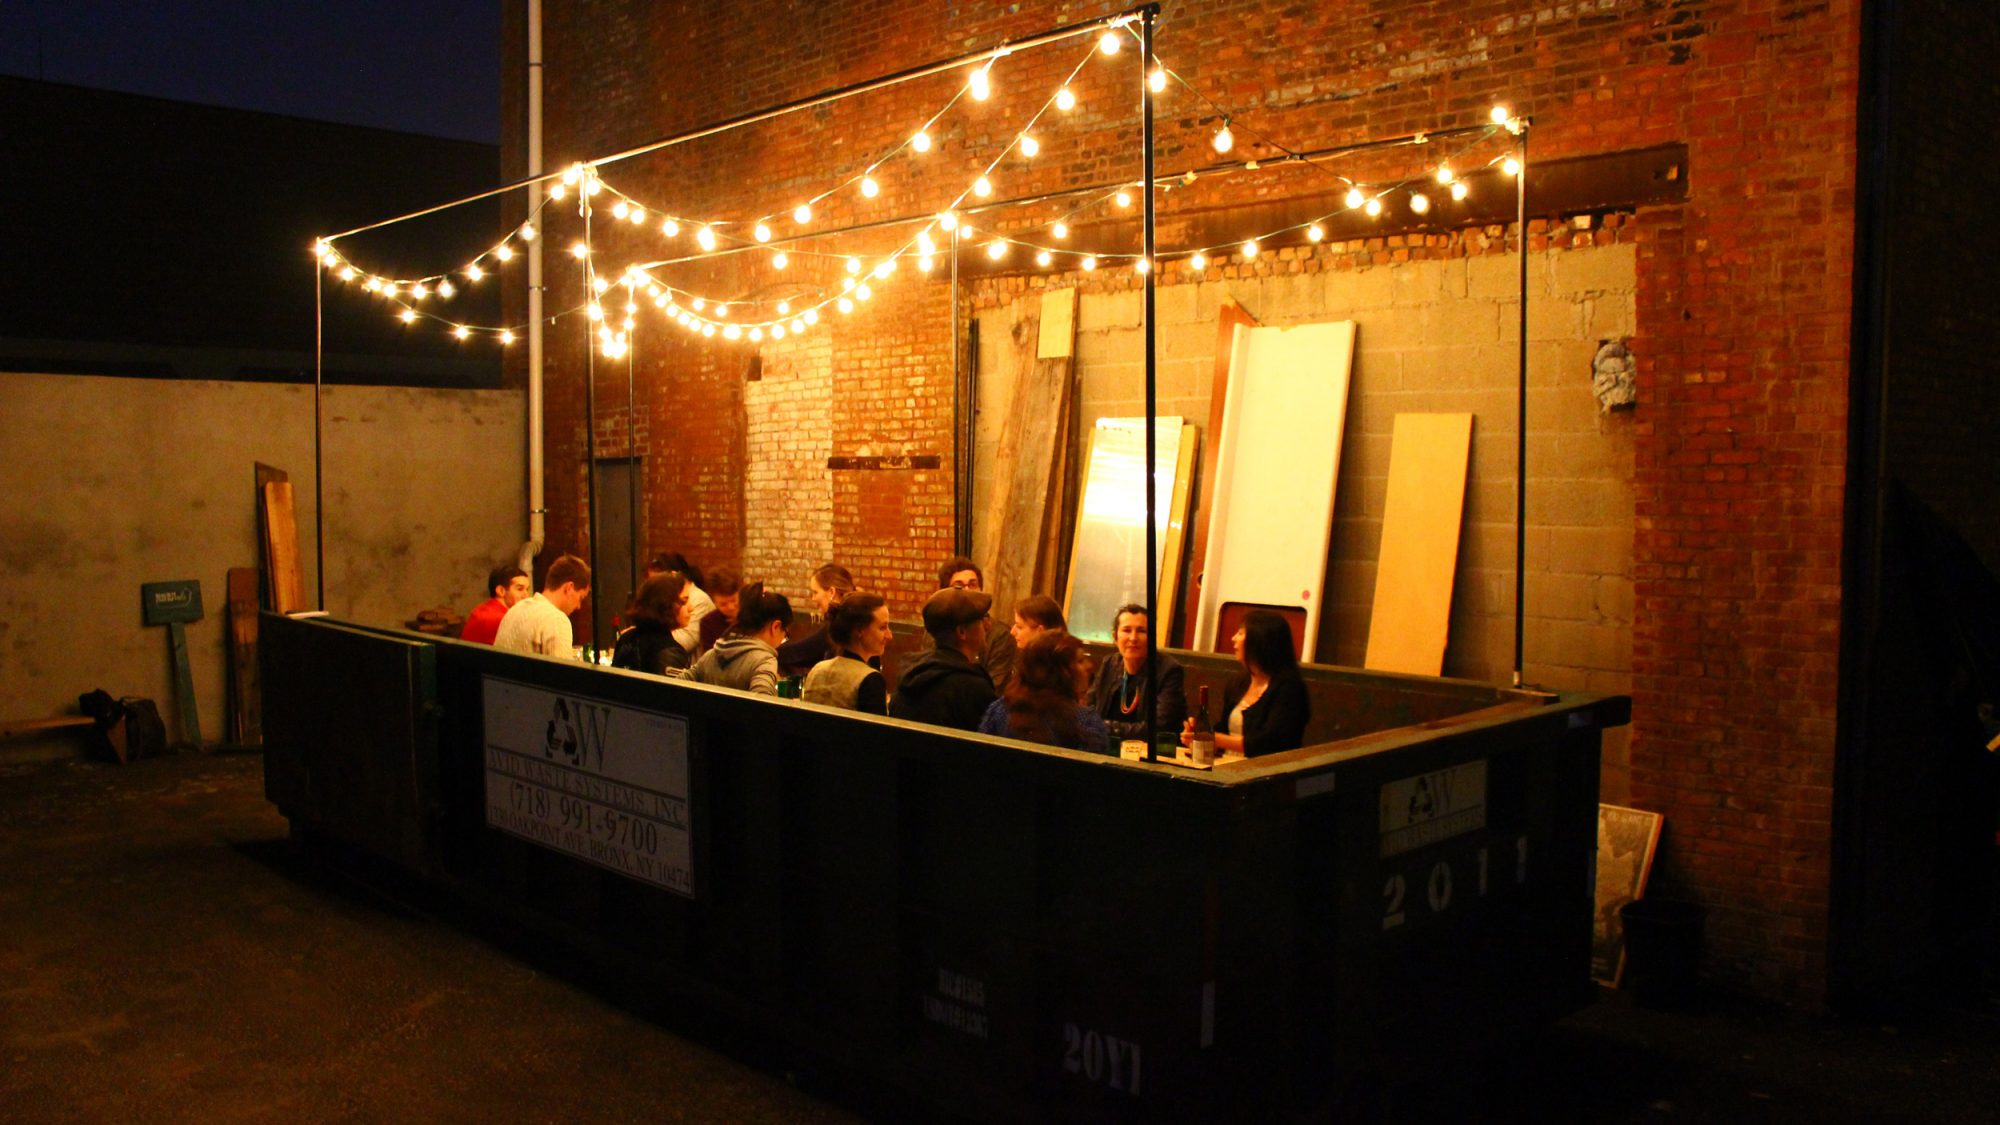 This Supper Club Meets In a Dumpster